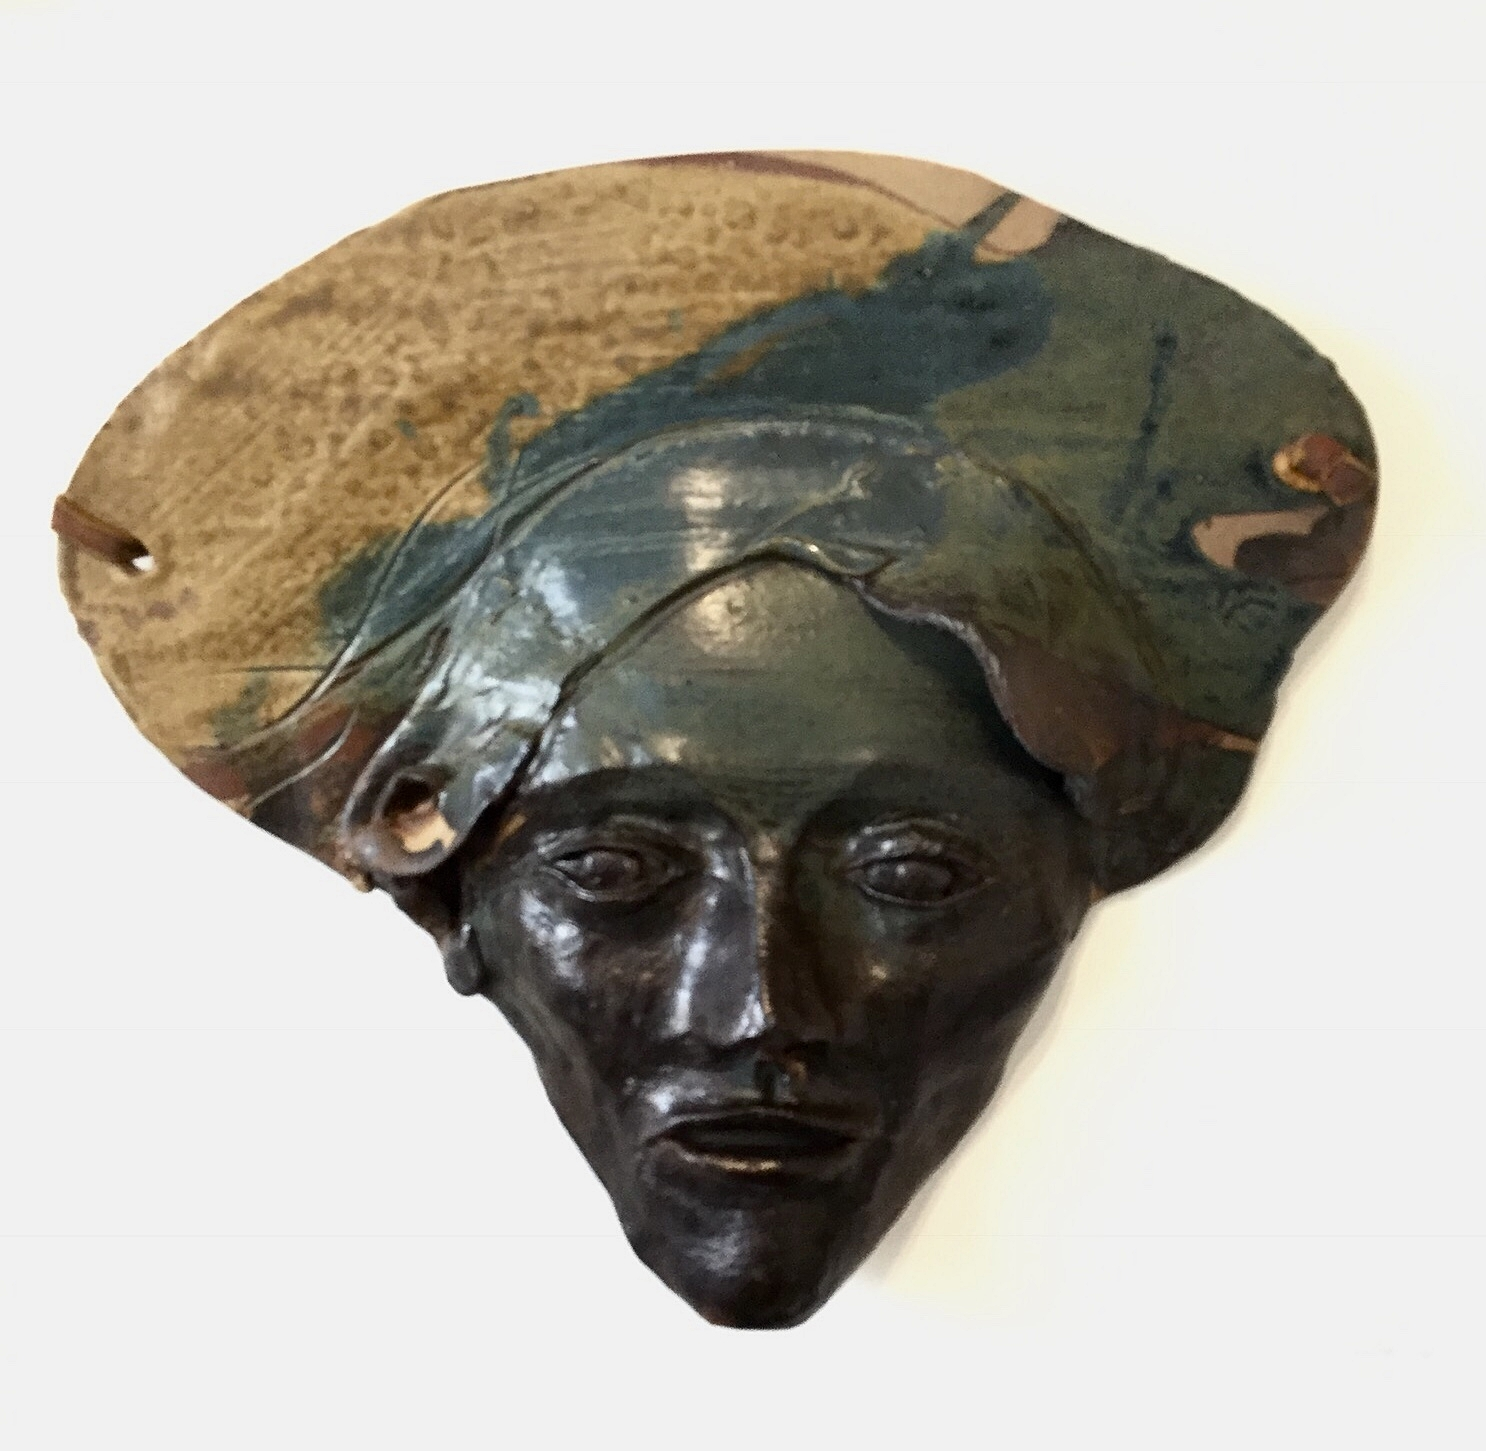 Vintage Ceramic Mask by Marco Coletti